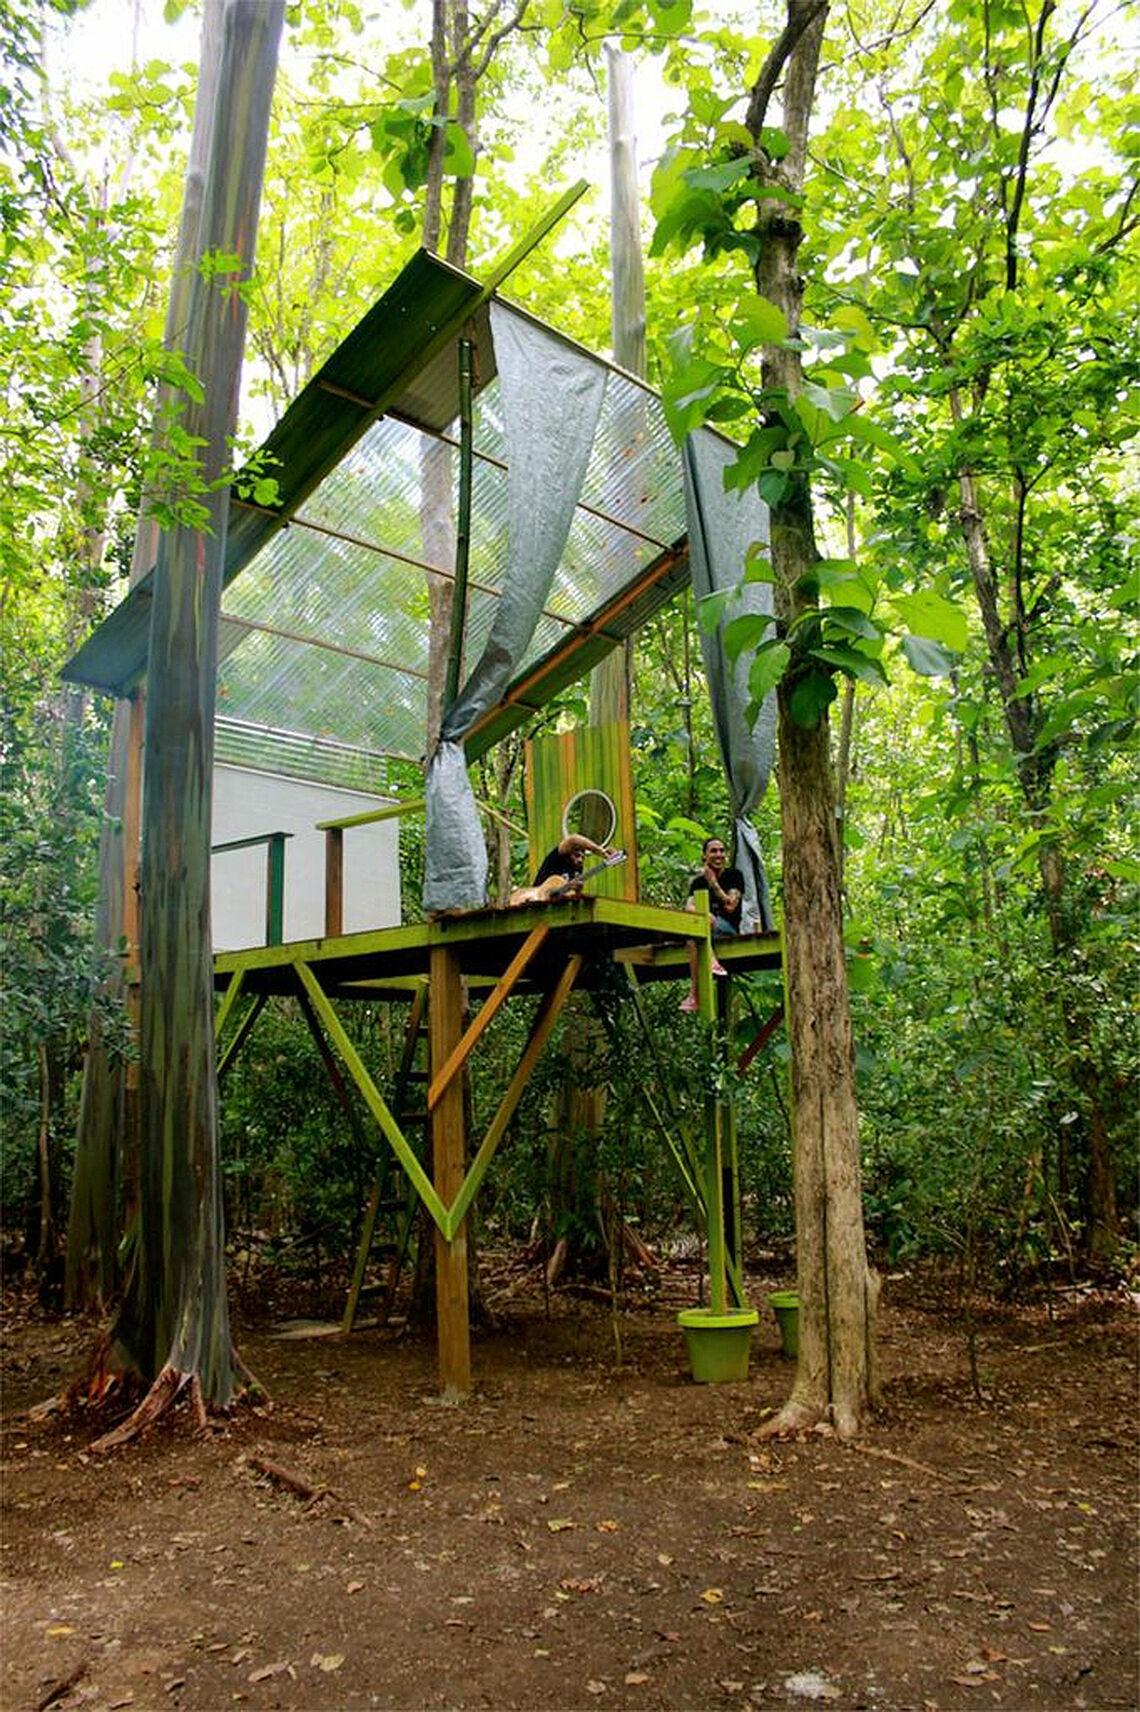 Two people sitting on a tree house.